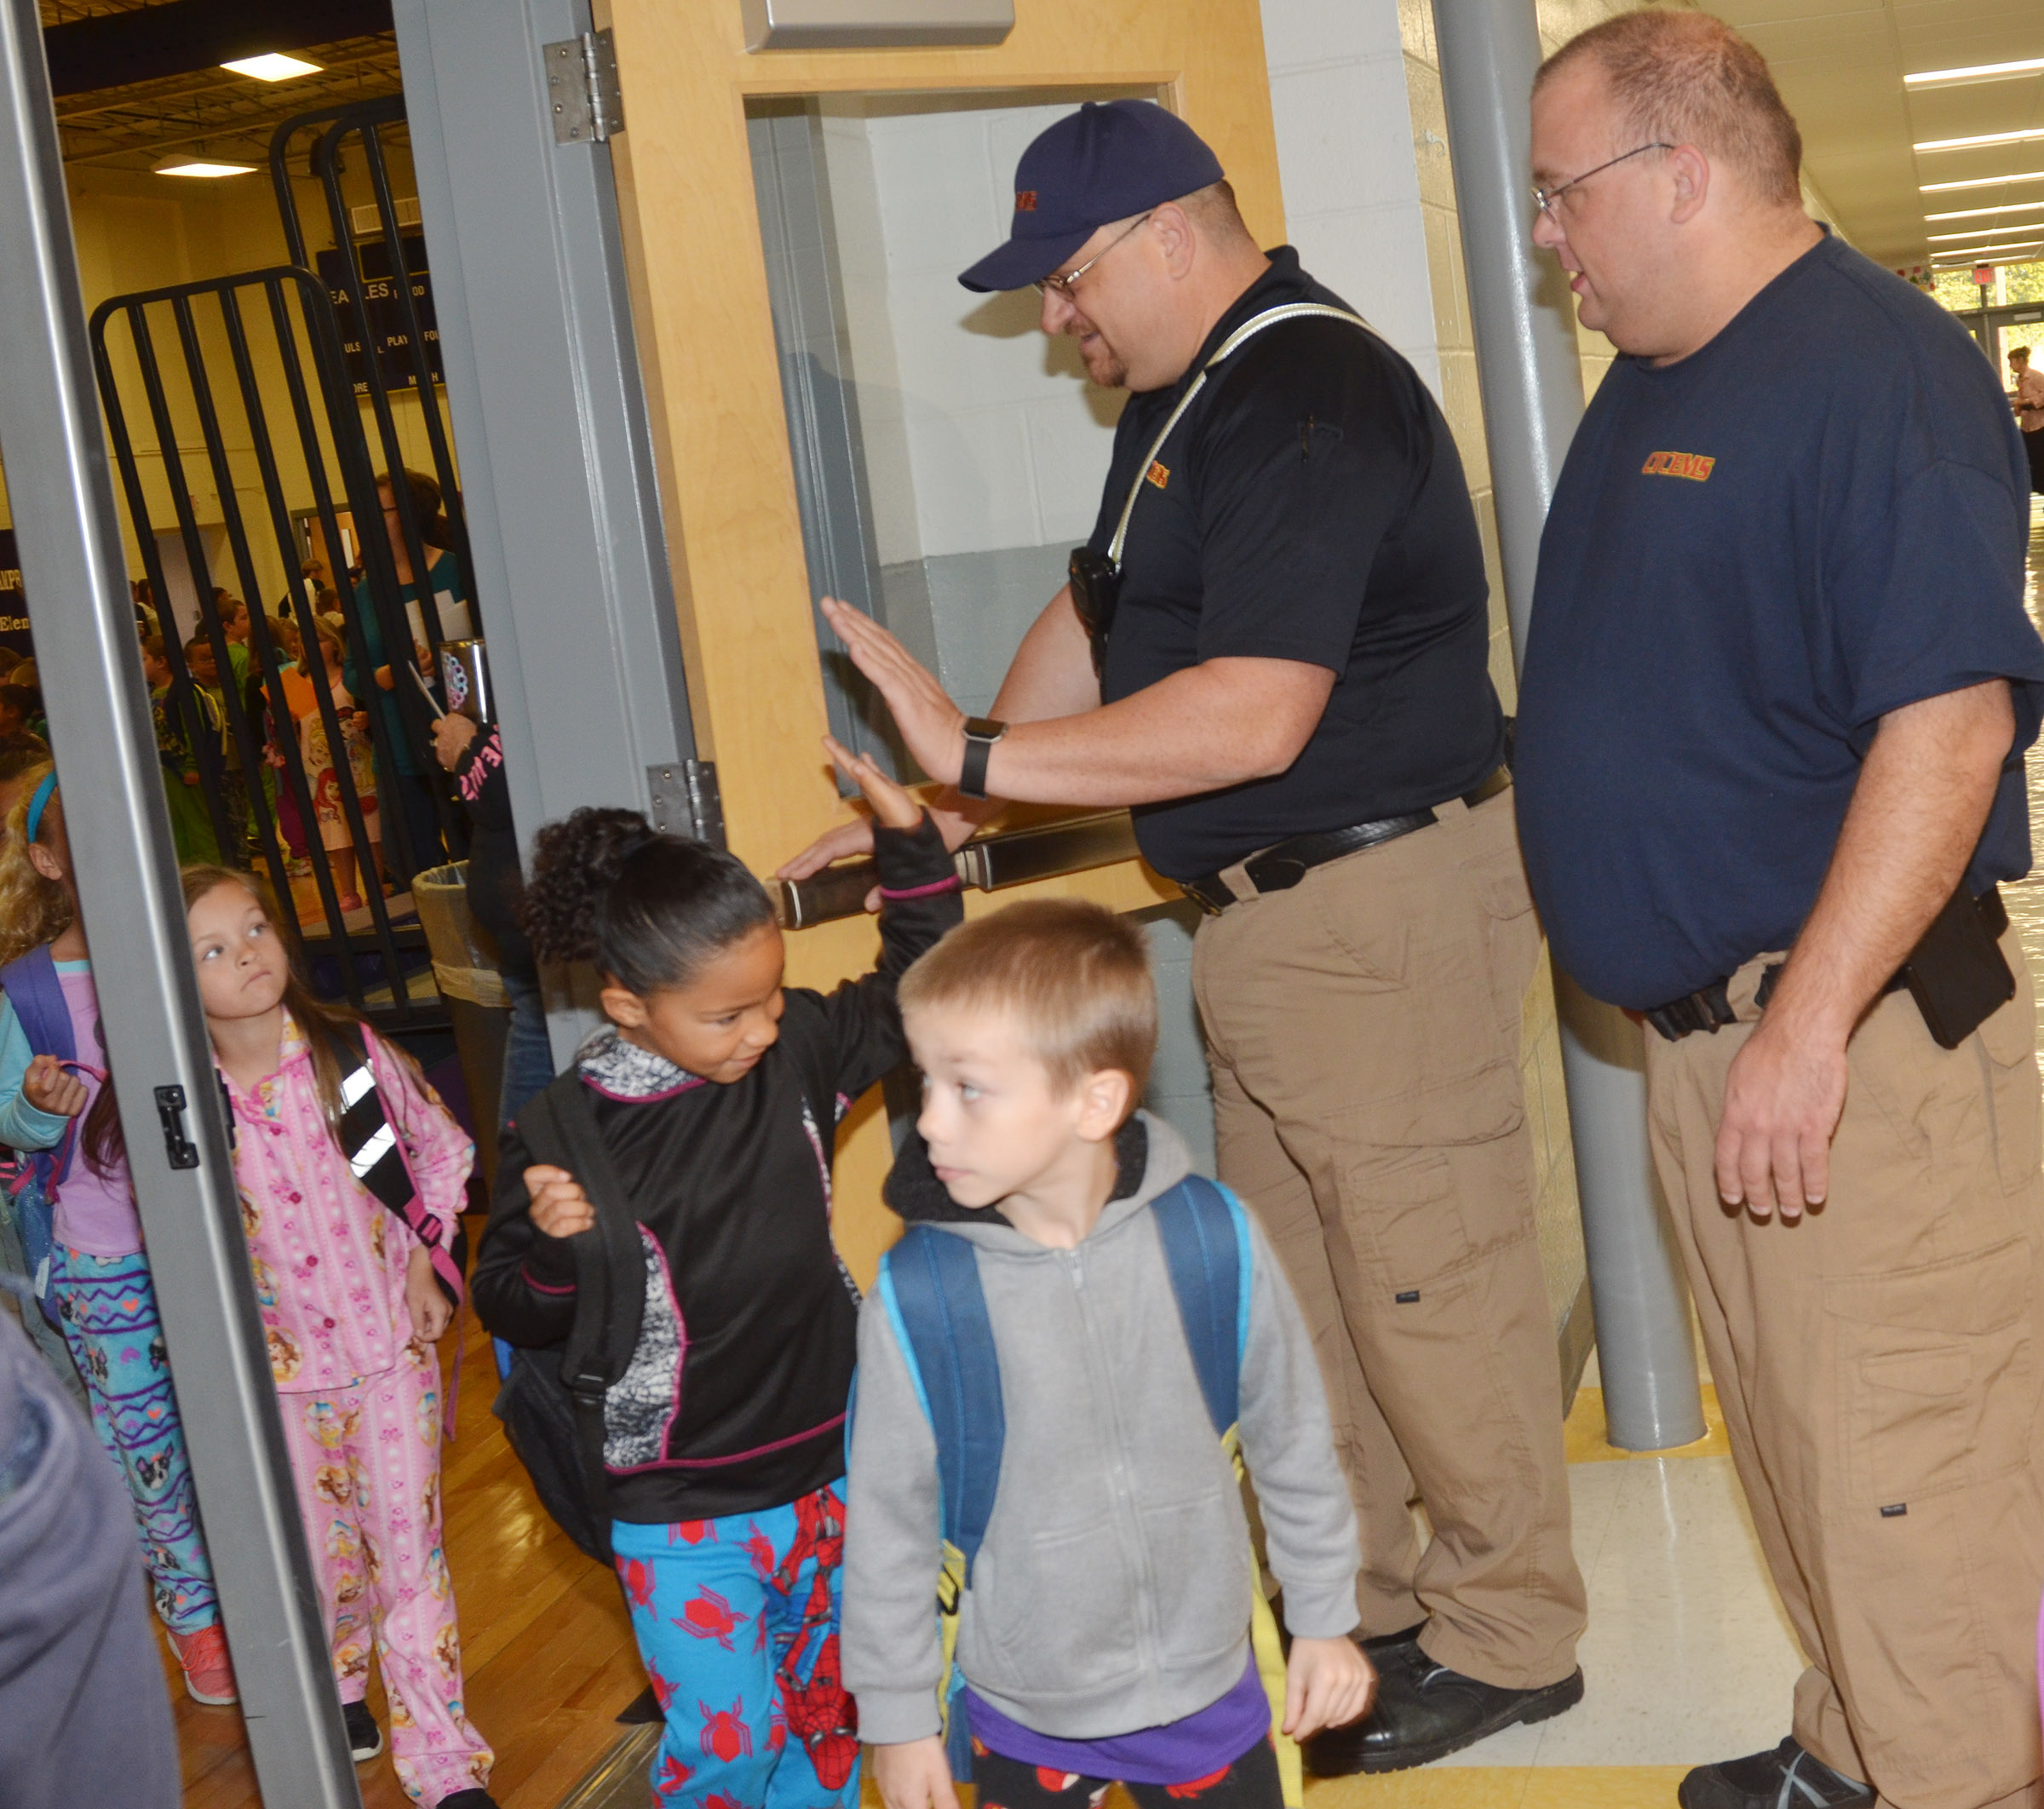 Campbellsville/Taylor County EMS personnel Steve Marrs, at left, and Adam England greet and high-five CES students.